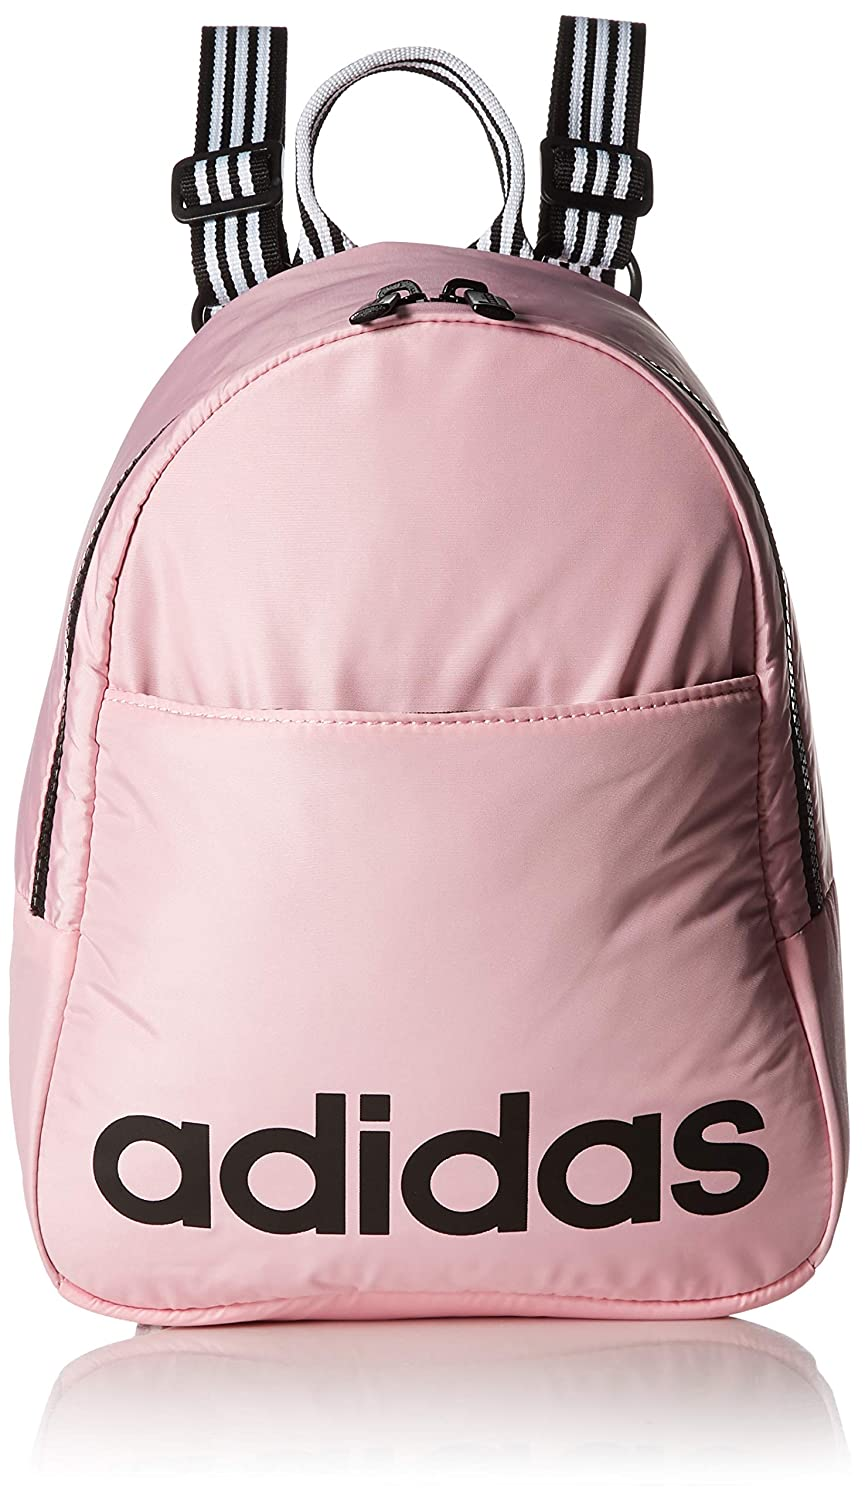 adidas Core Mini Backpack Black/White One Size Agron Inc (adidas Bags) 978026